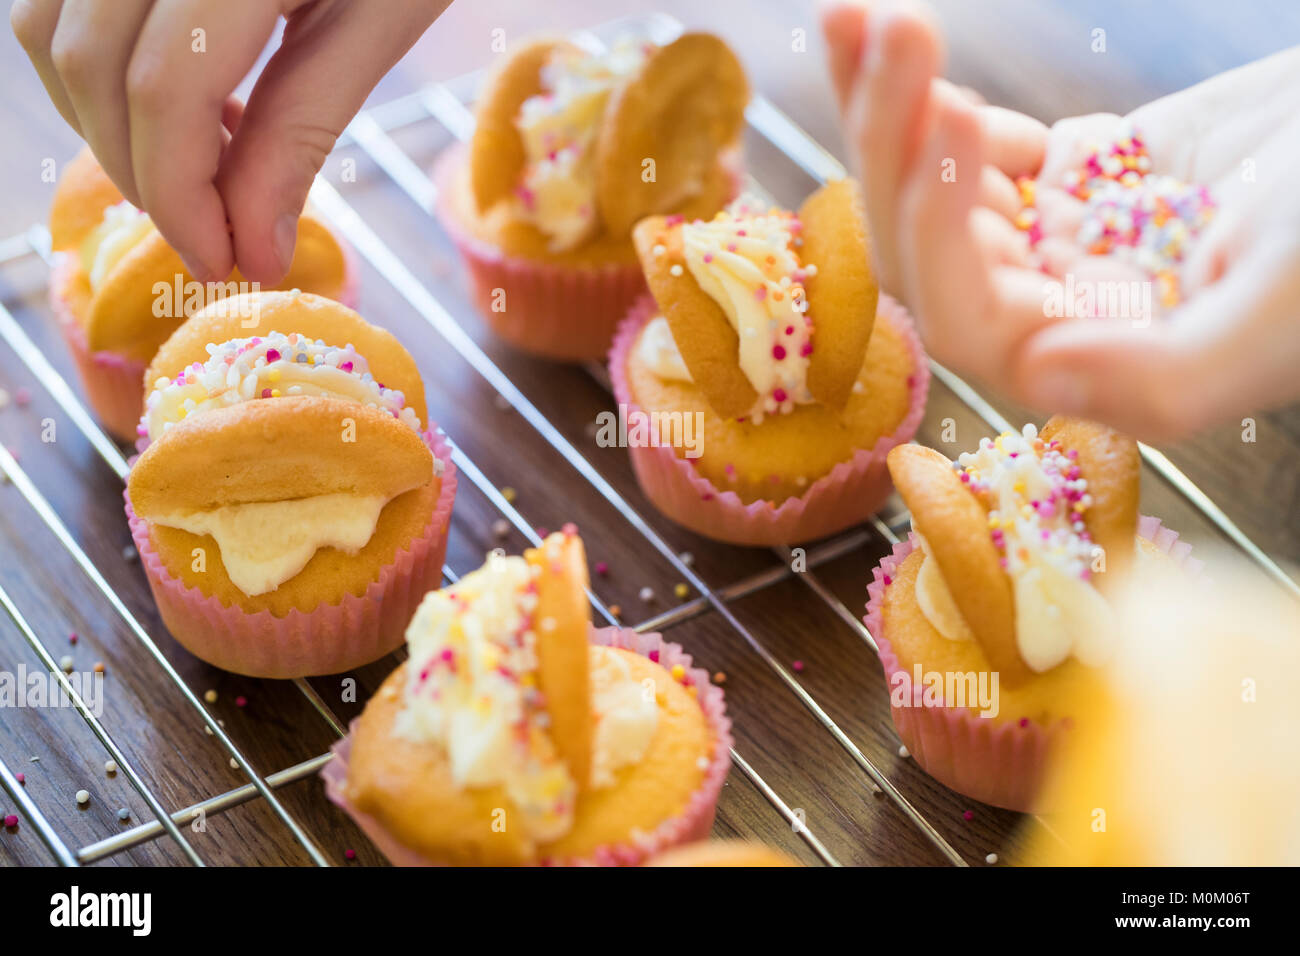 Close Up Of Girl In Kitchen Decorating Home Made Cupcakes - Stock Image